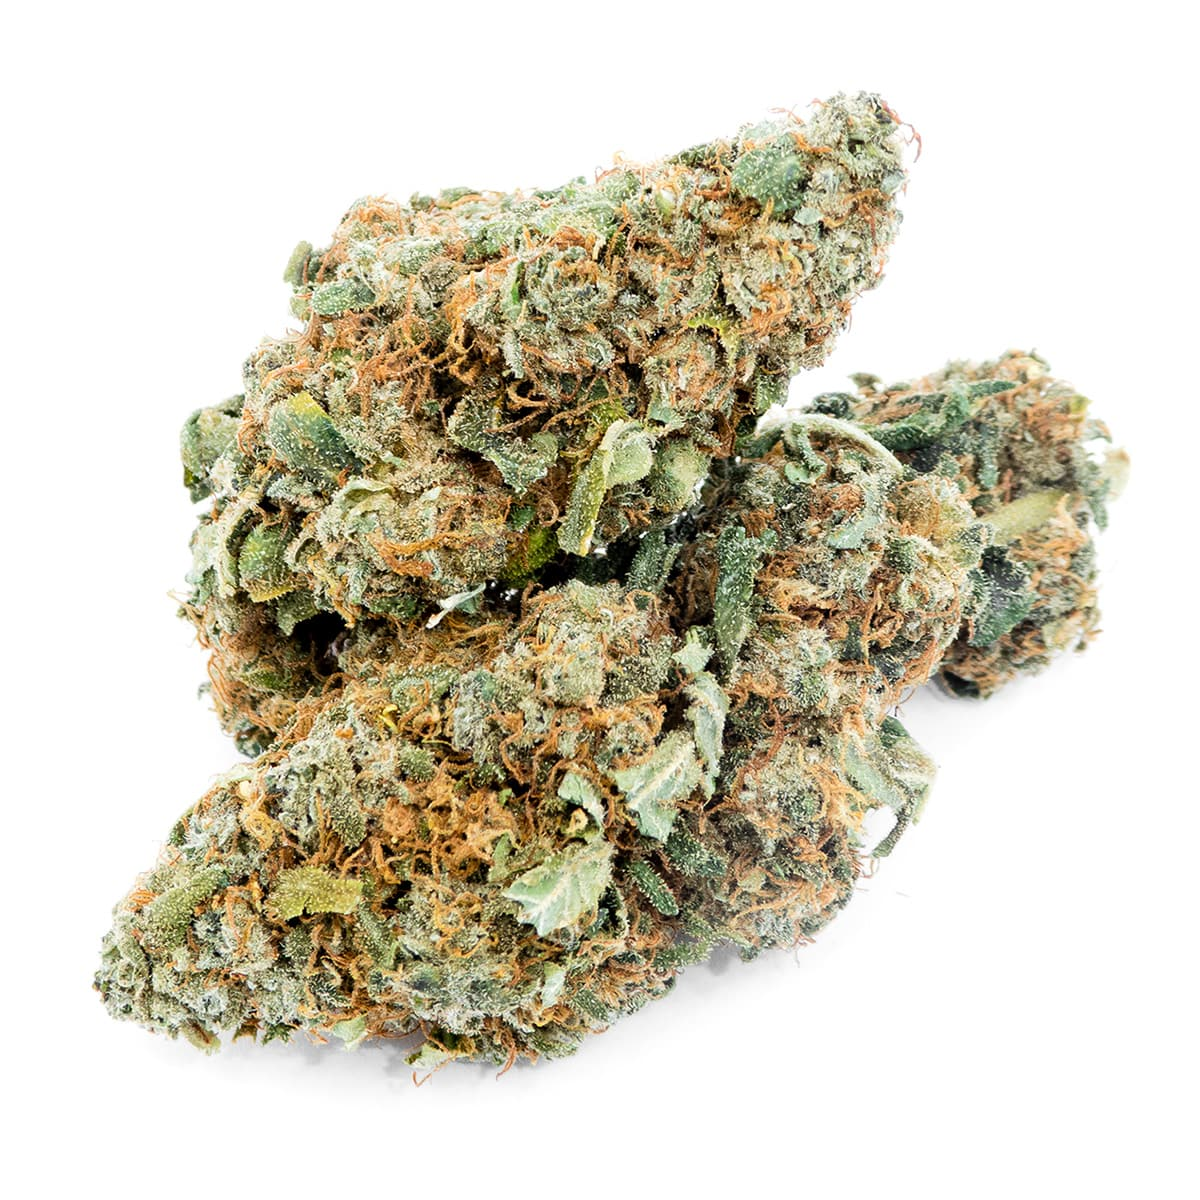 swiss-cbd-wholesale-legal-cannabis-light-indoor-premium-weed-europe-delivery-orange-bud-big.jpg